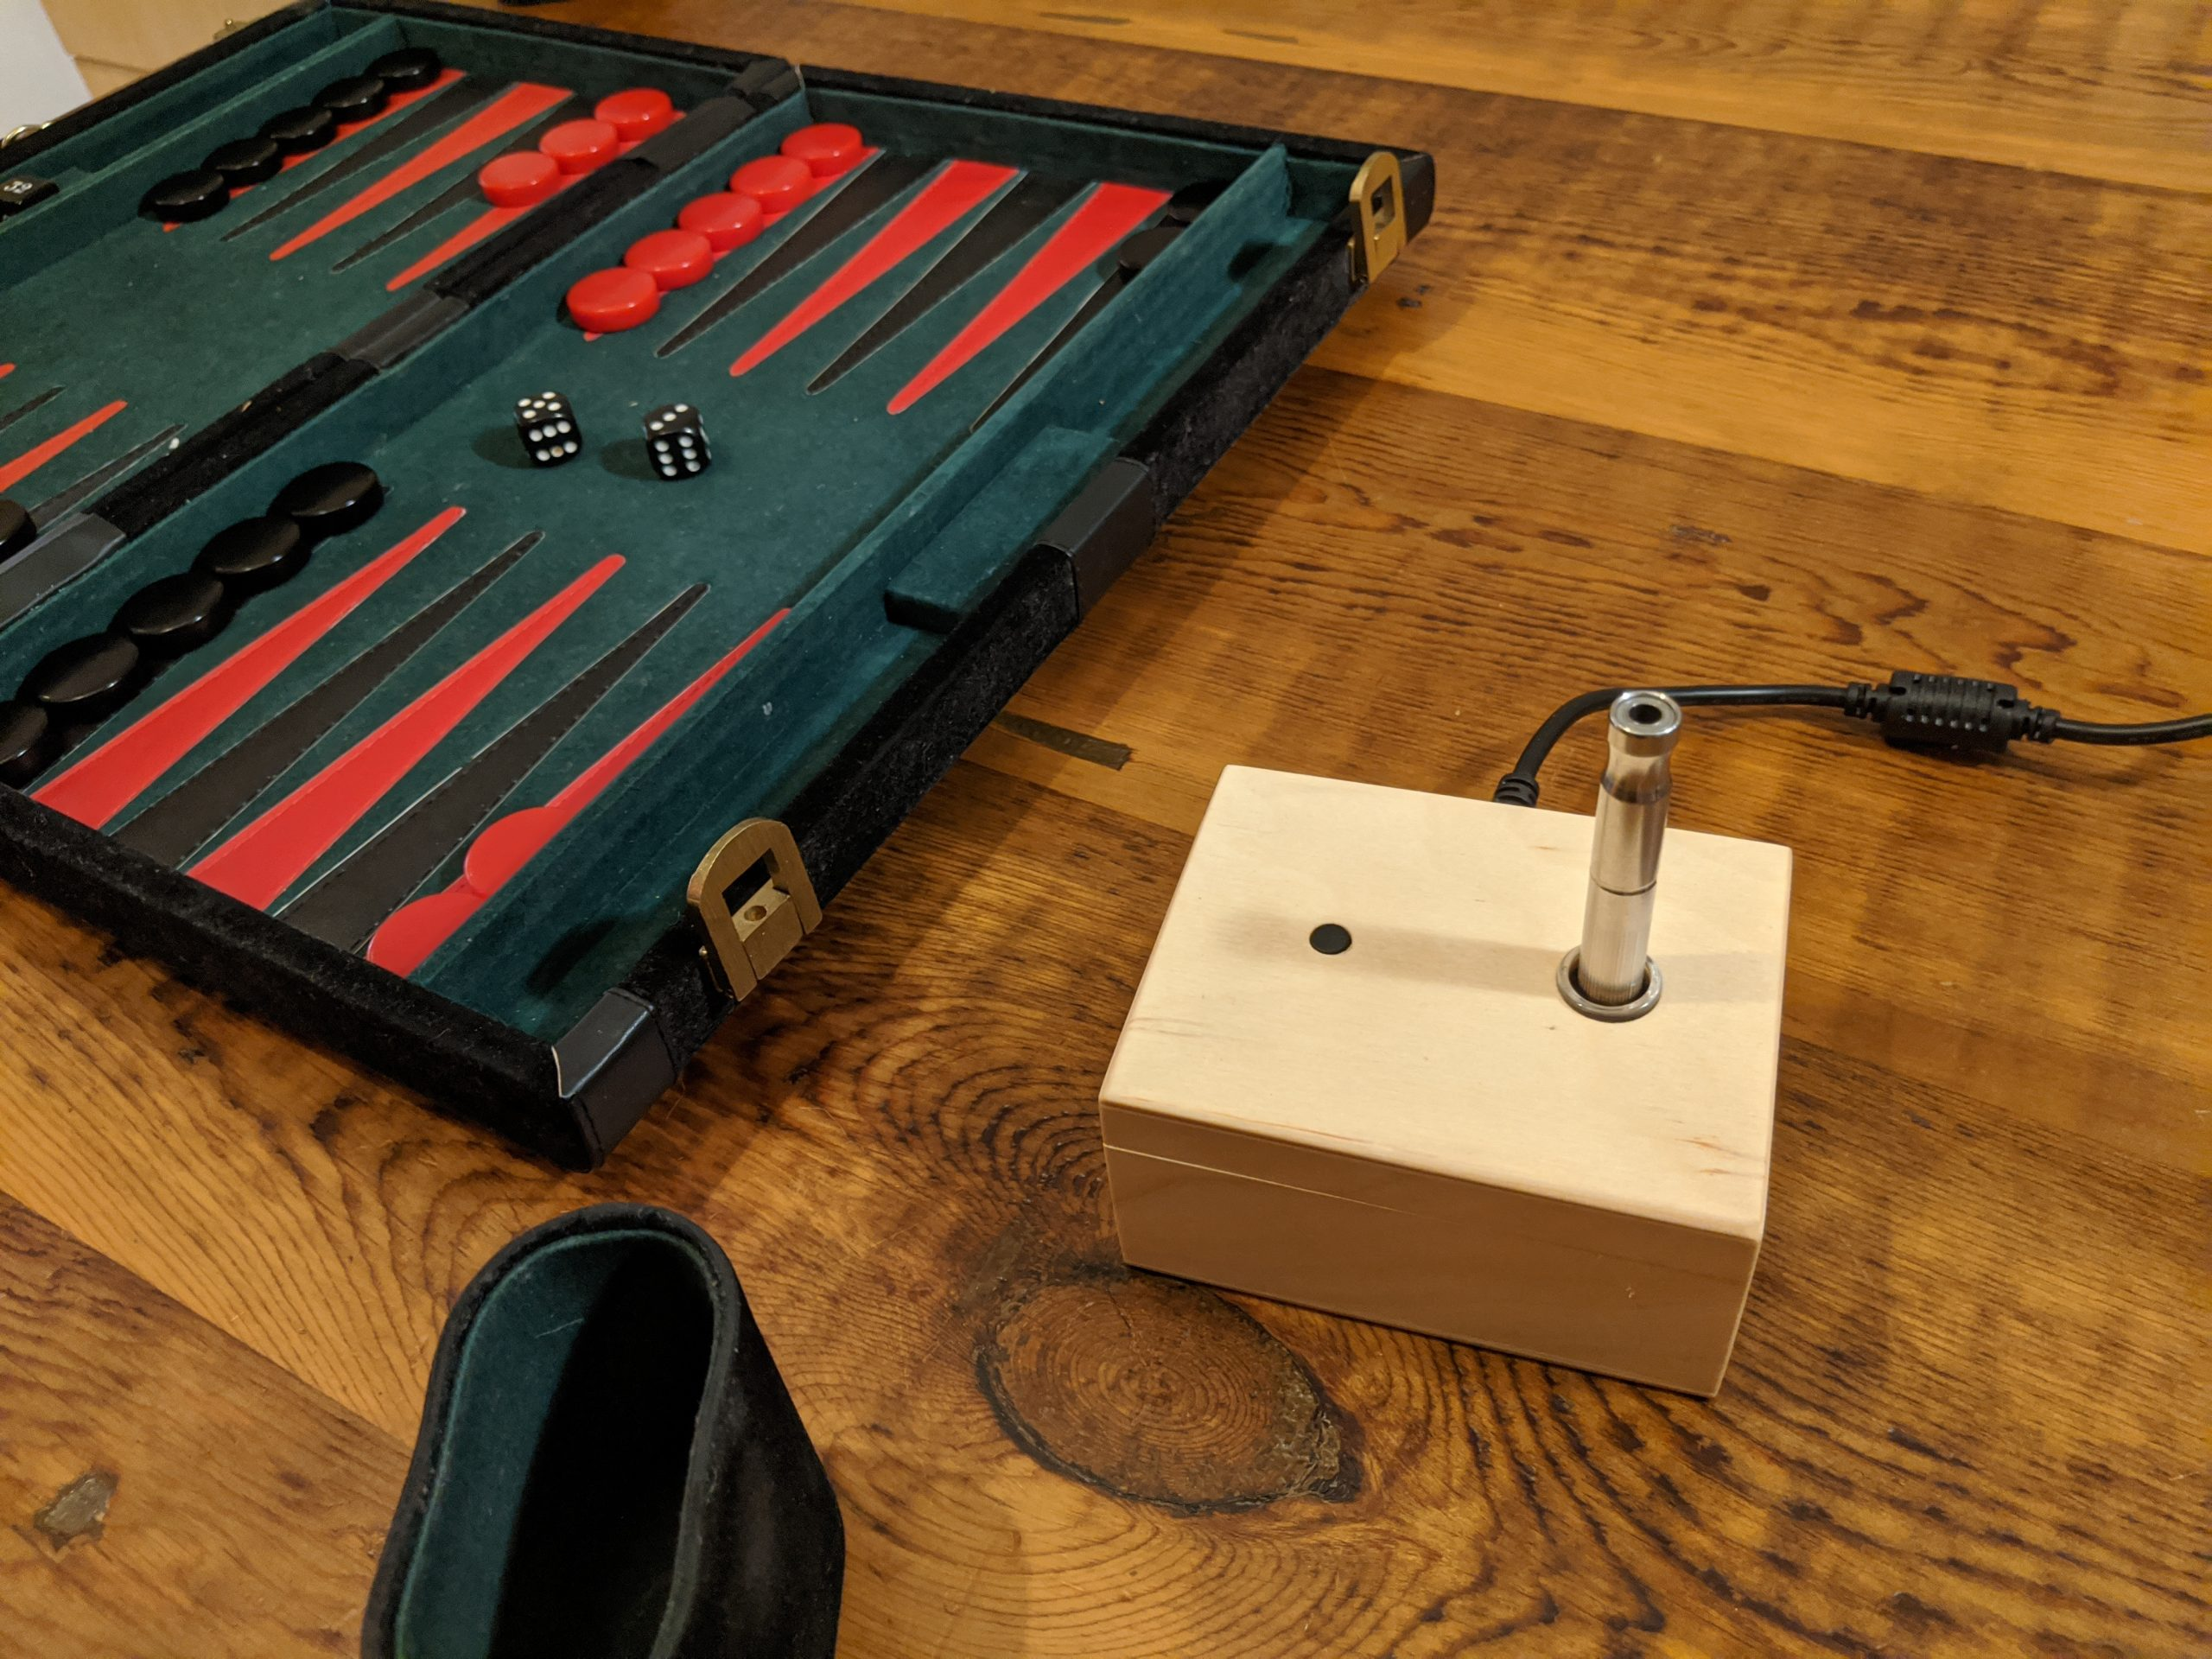 A VapOven Classic DynaVap induction heater being enjoyed along with a game of backgammon